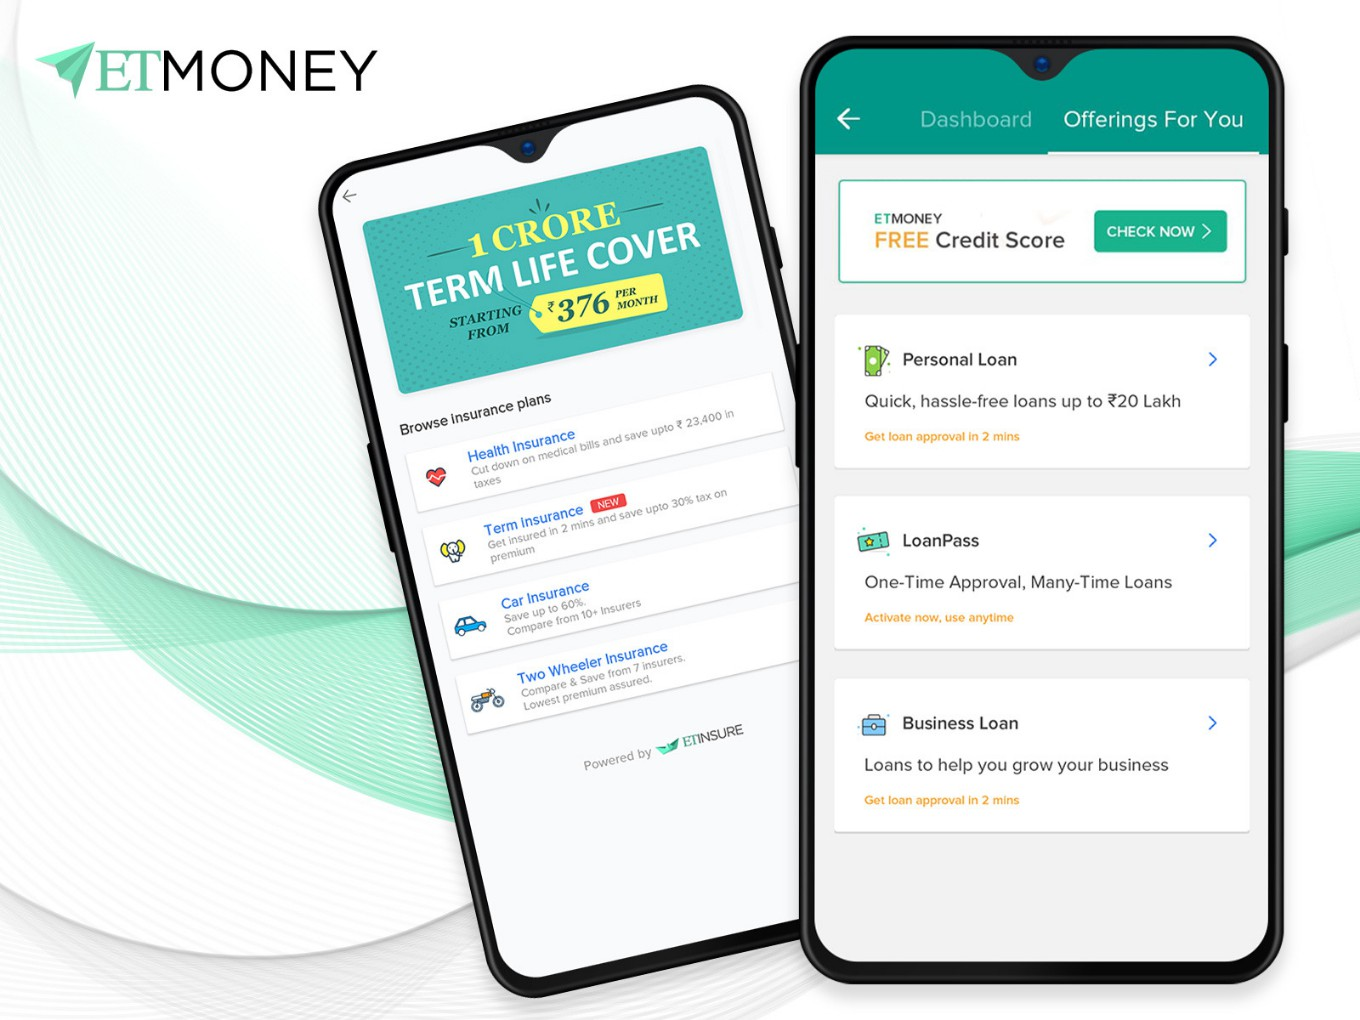 ETMONEY Hunts For Revenue With Insurance And Loan Services